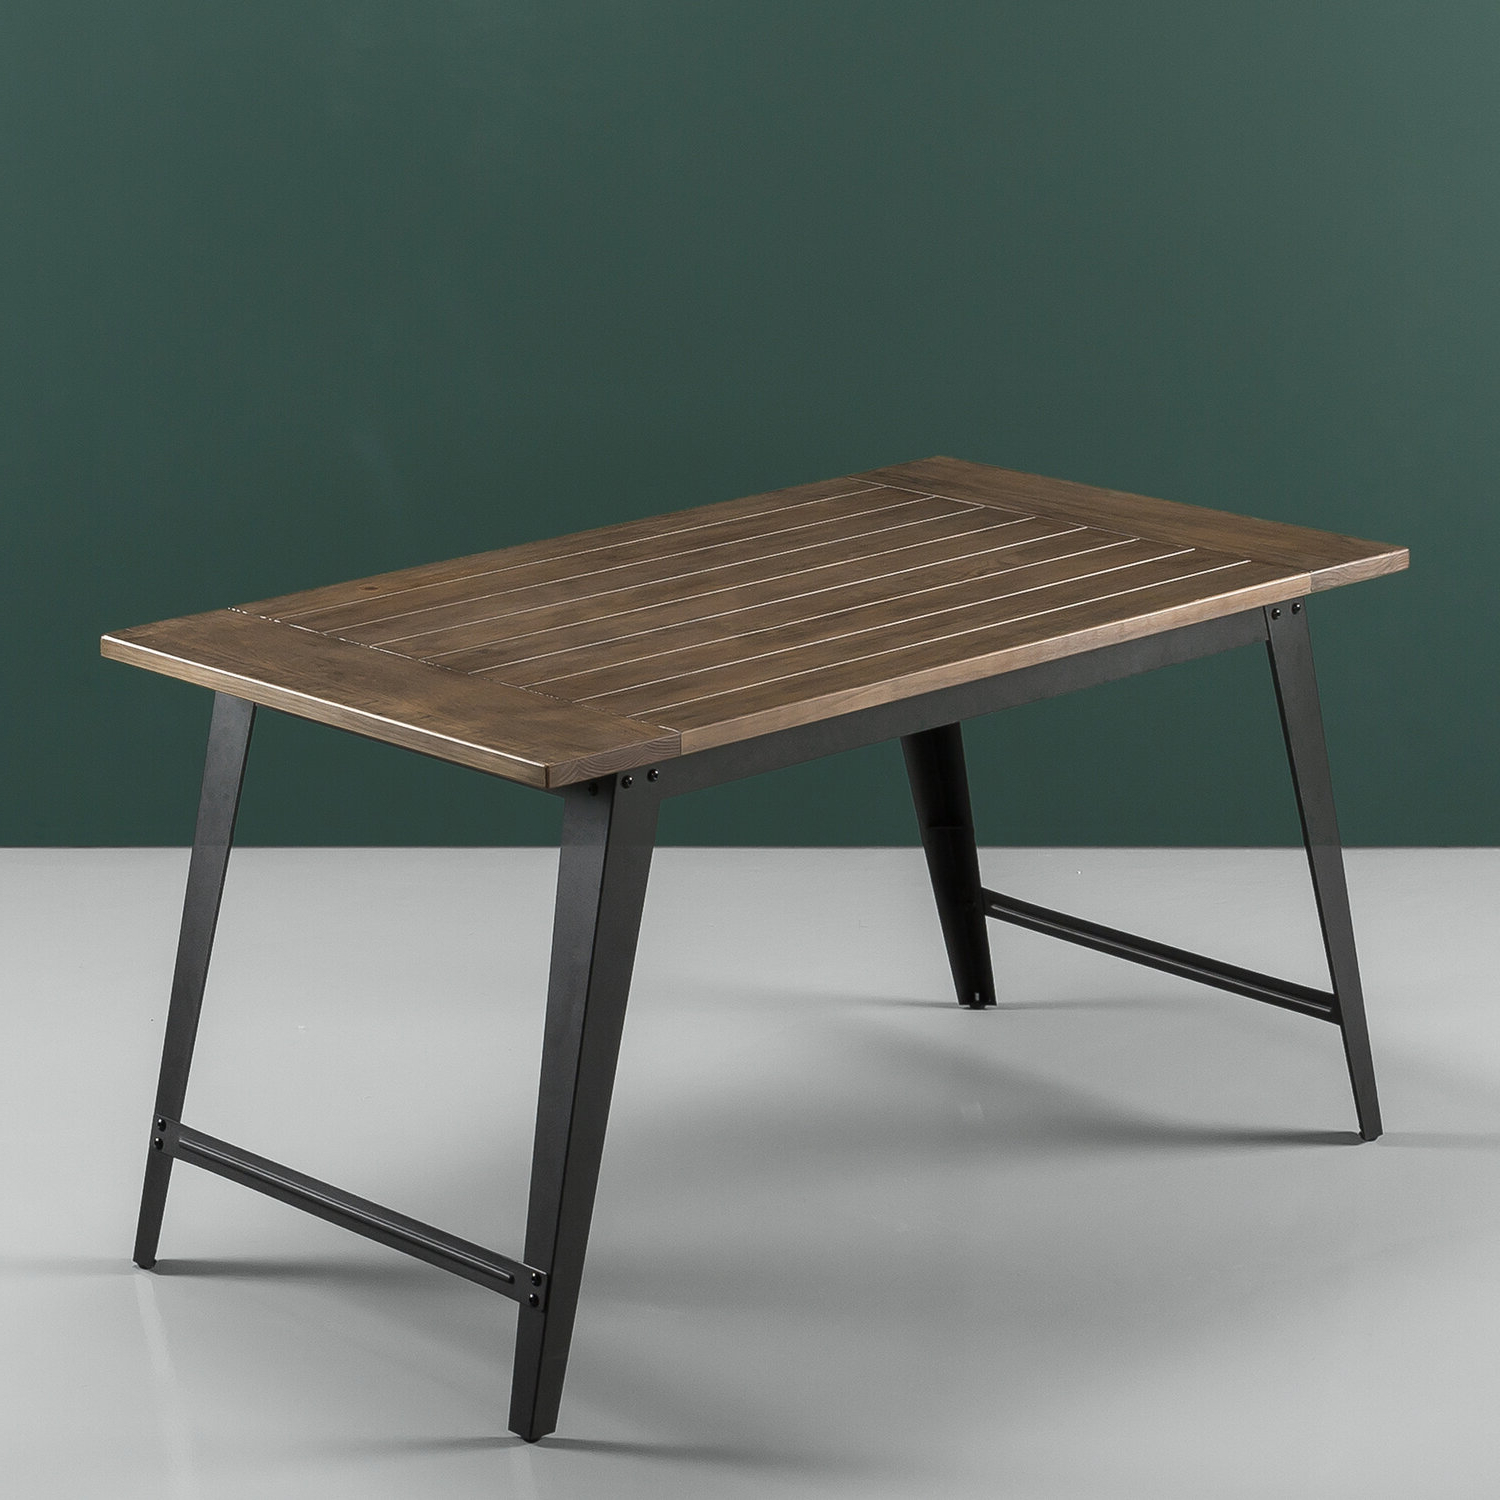 Williston Forge Carle Wood And Metal Dining Table & Reviews Throughout Well Known Acacia Wood Top Dining Tables With Iron Legs On Raw Metal (View 25 of 25)